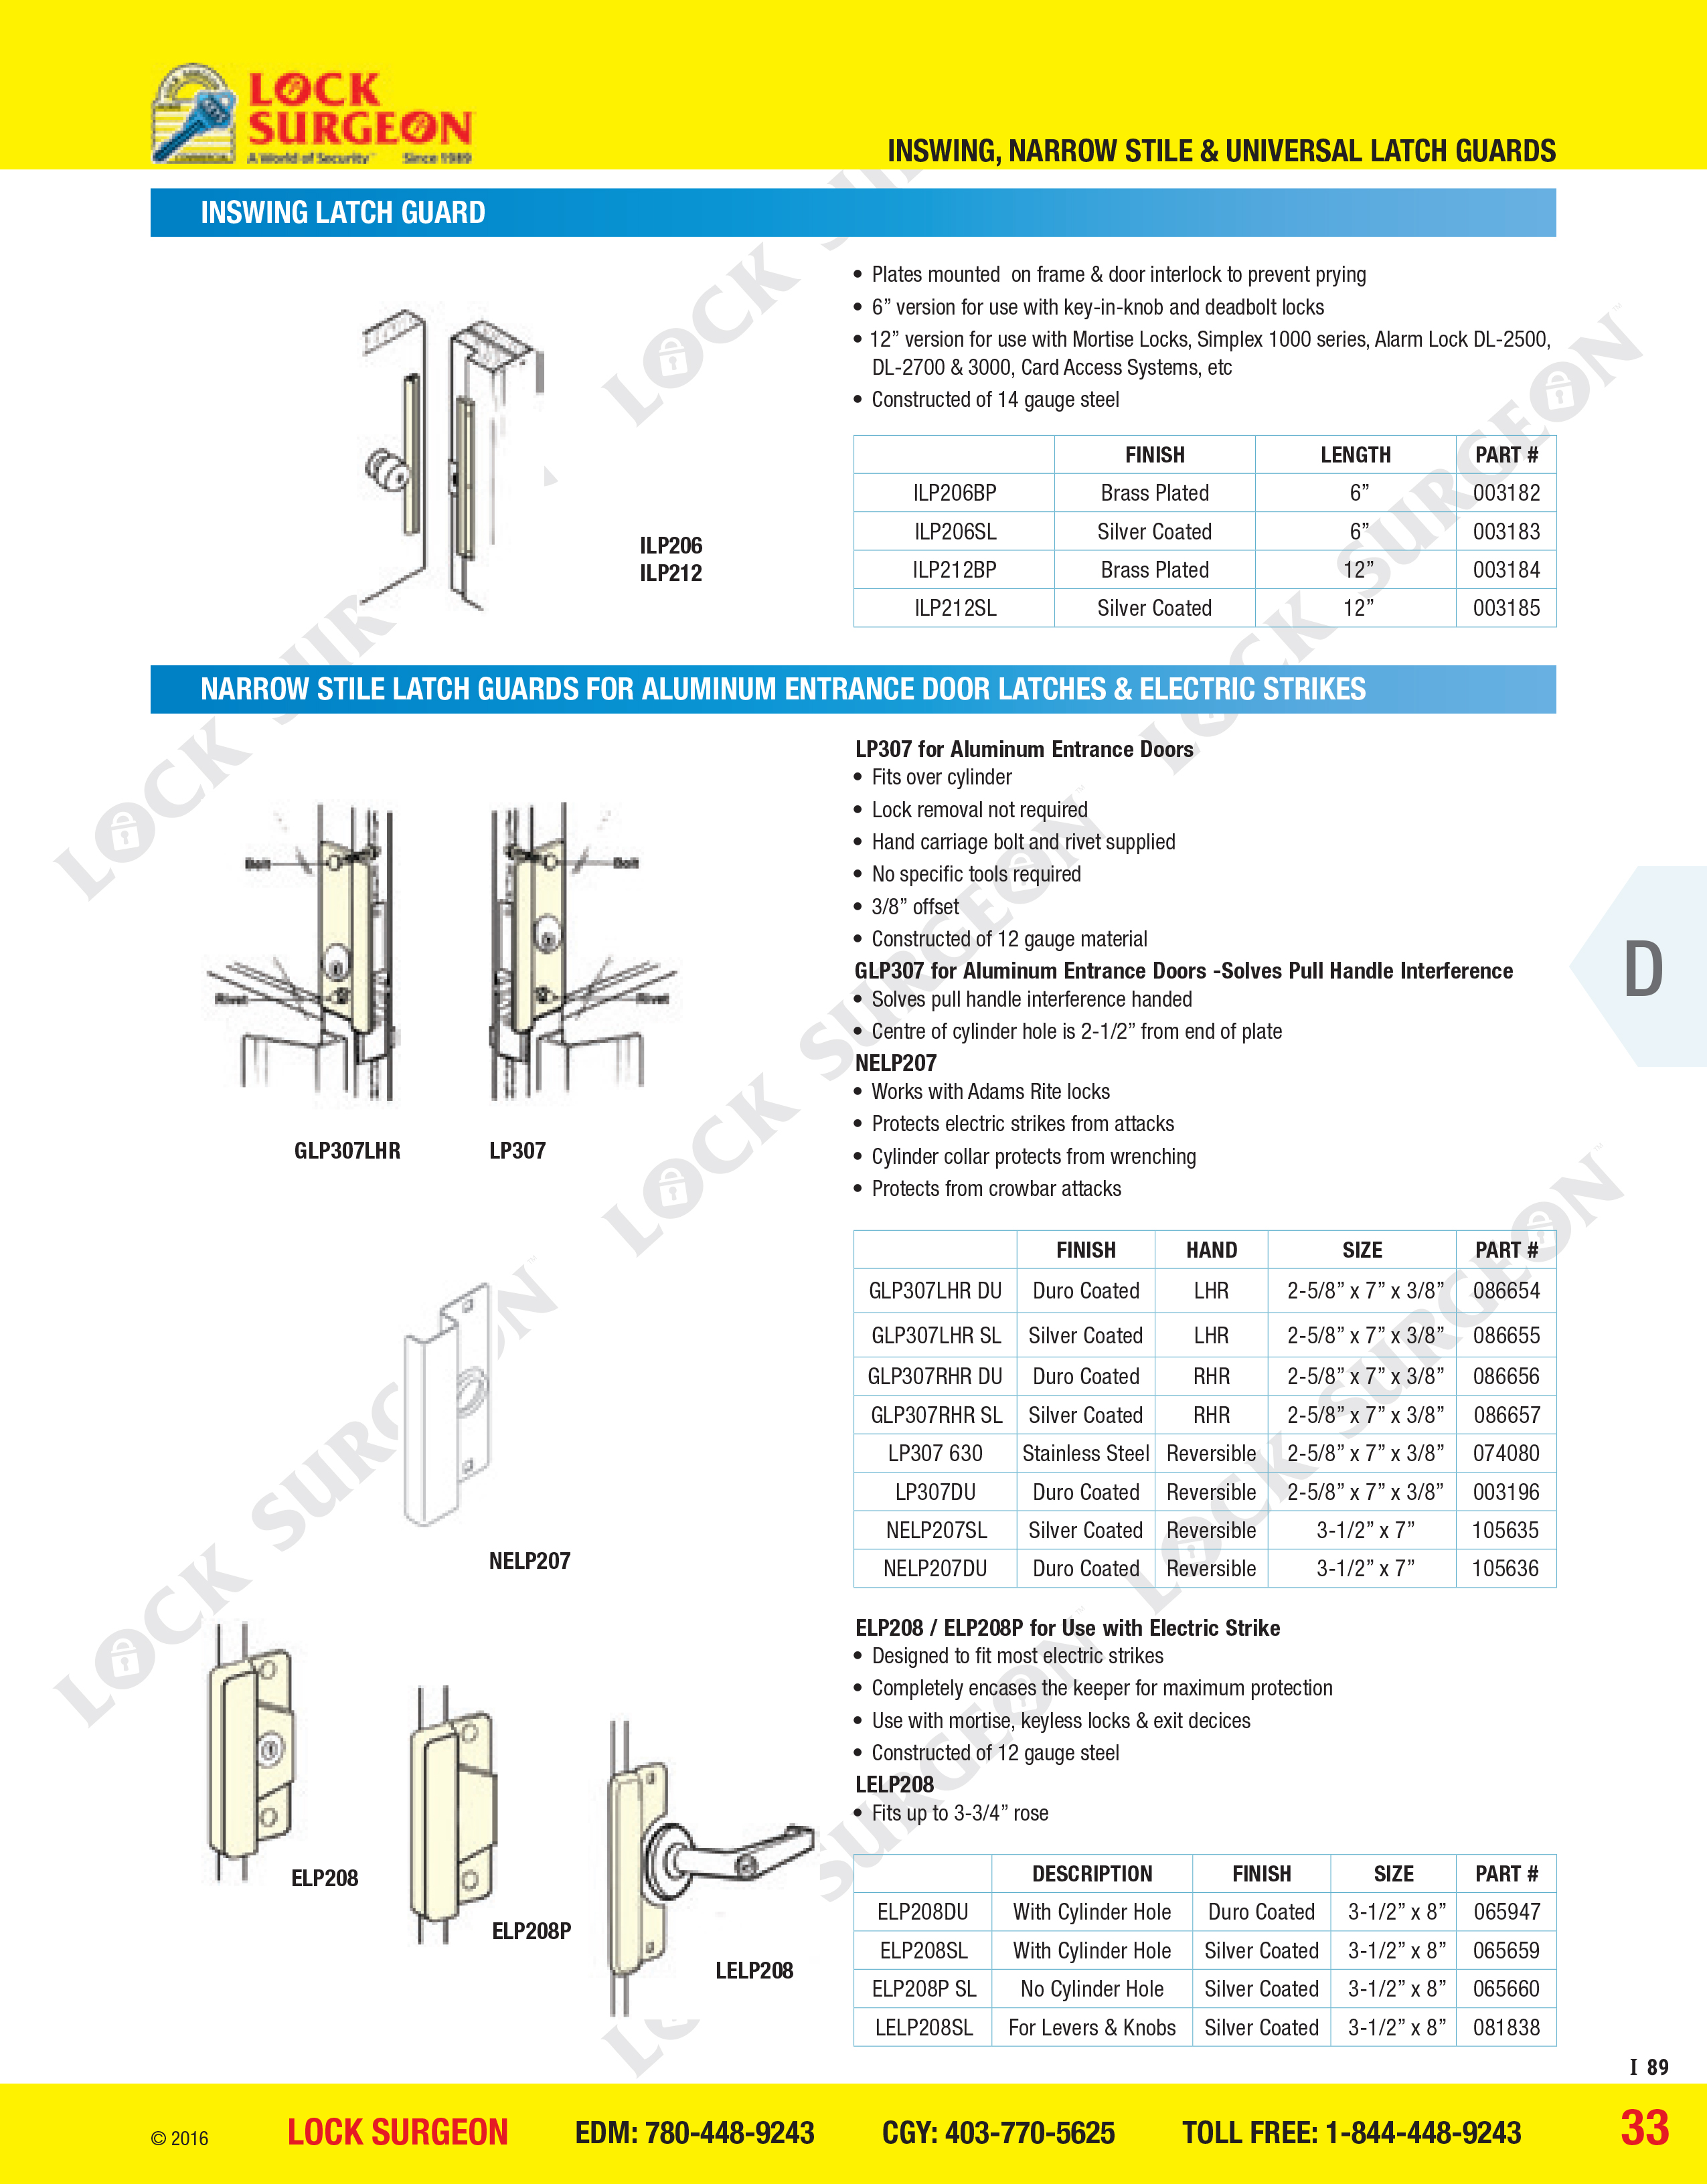 Inswing latch guard, narrow stile latch guards for aluminium entrance door latches and electric strikes